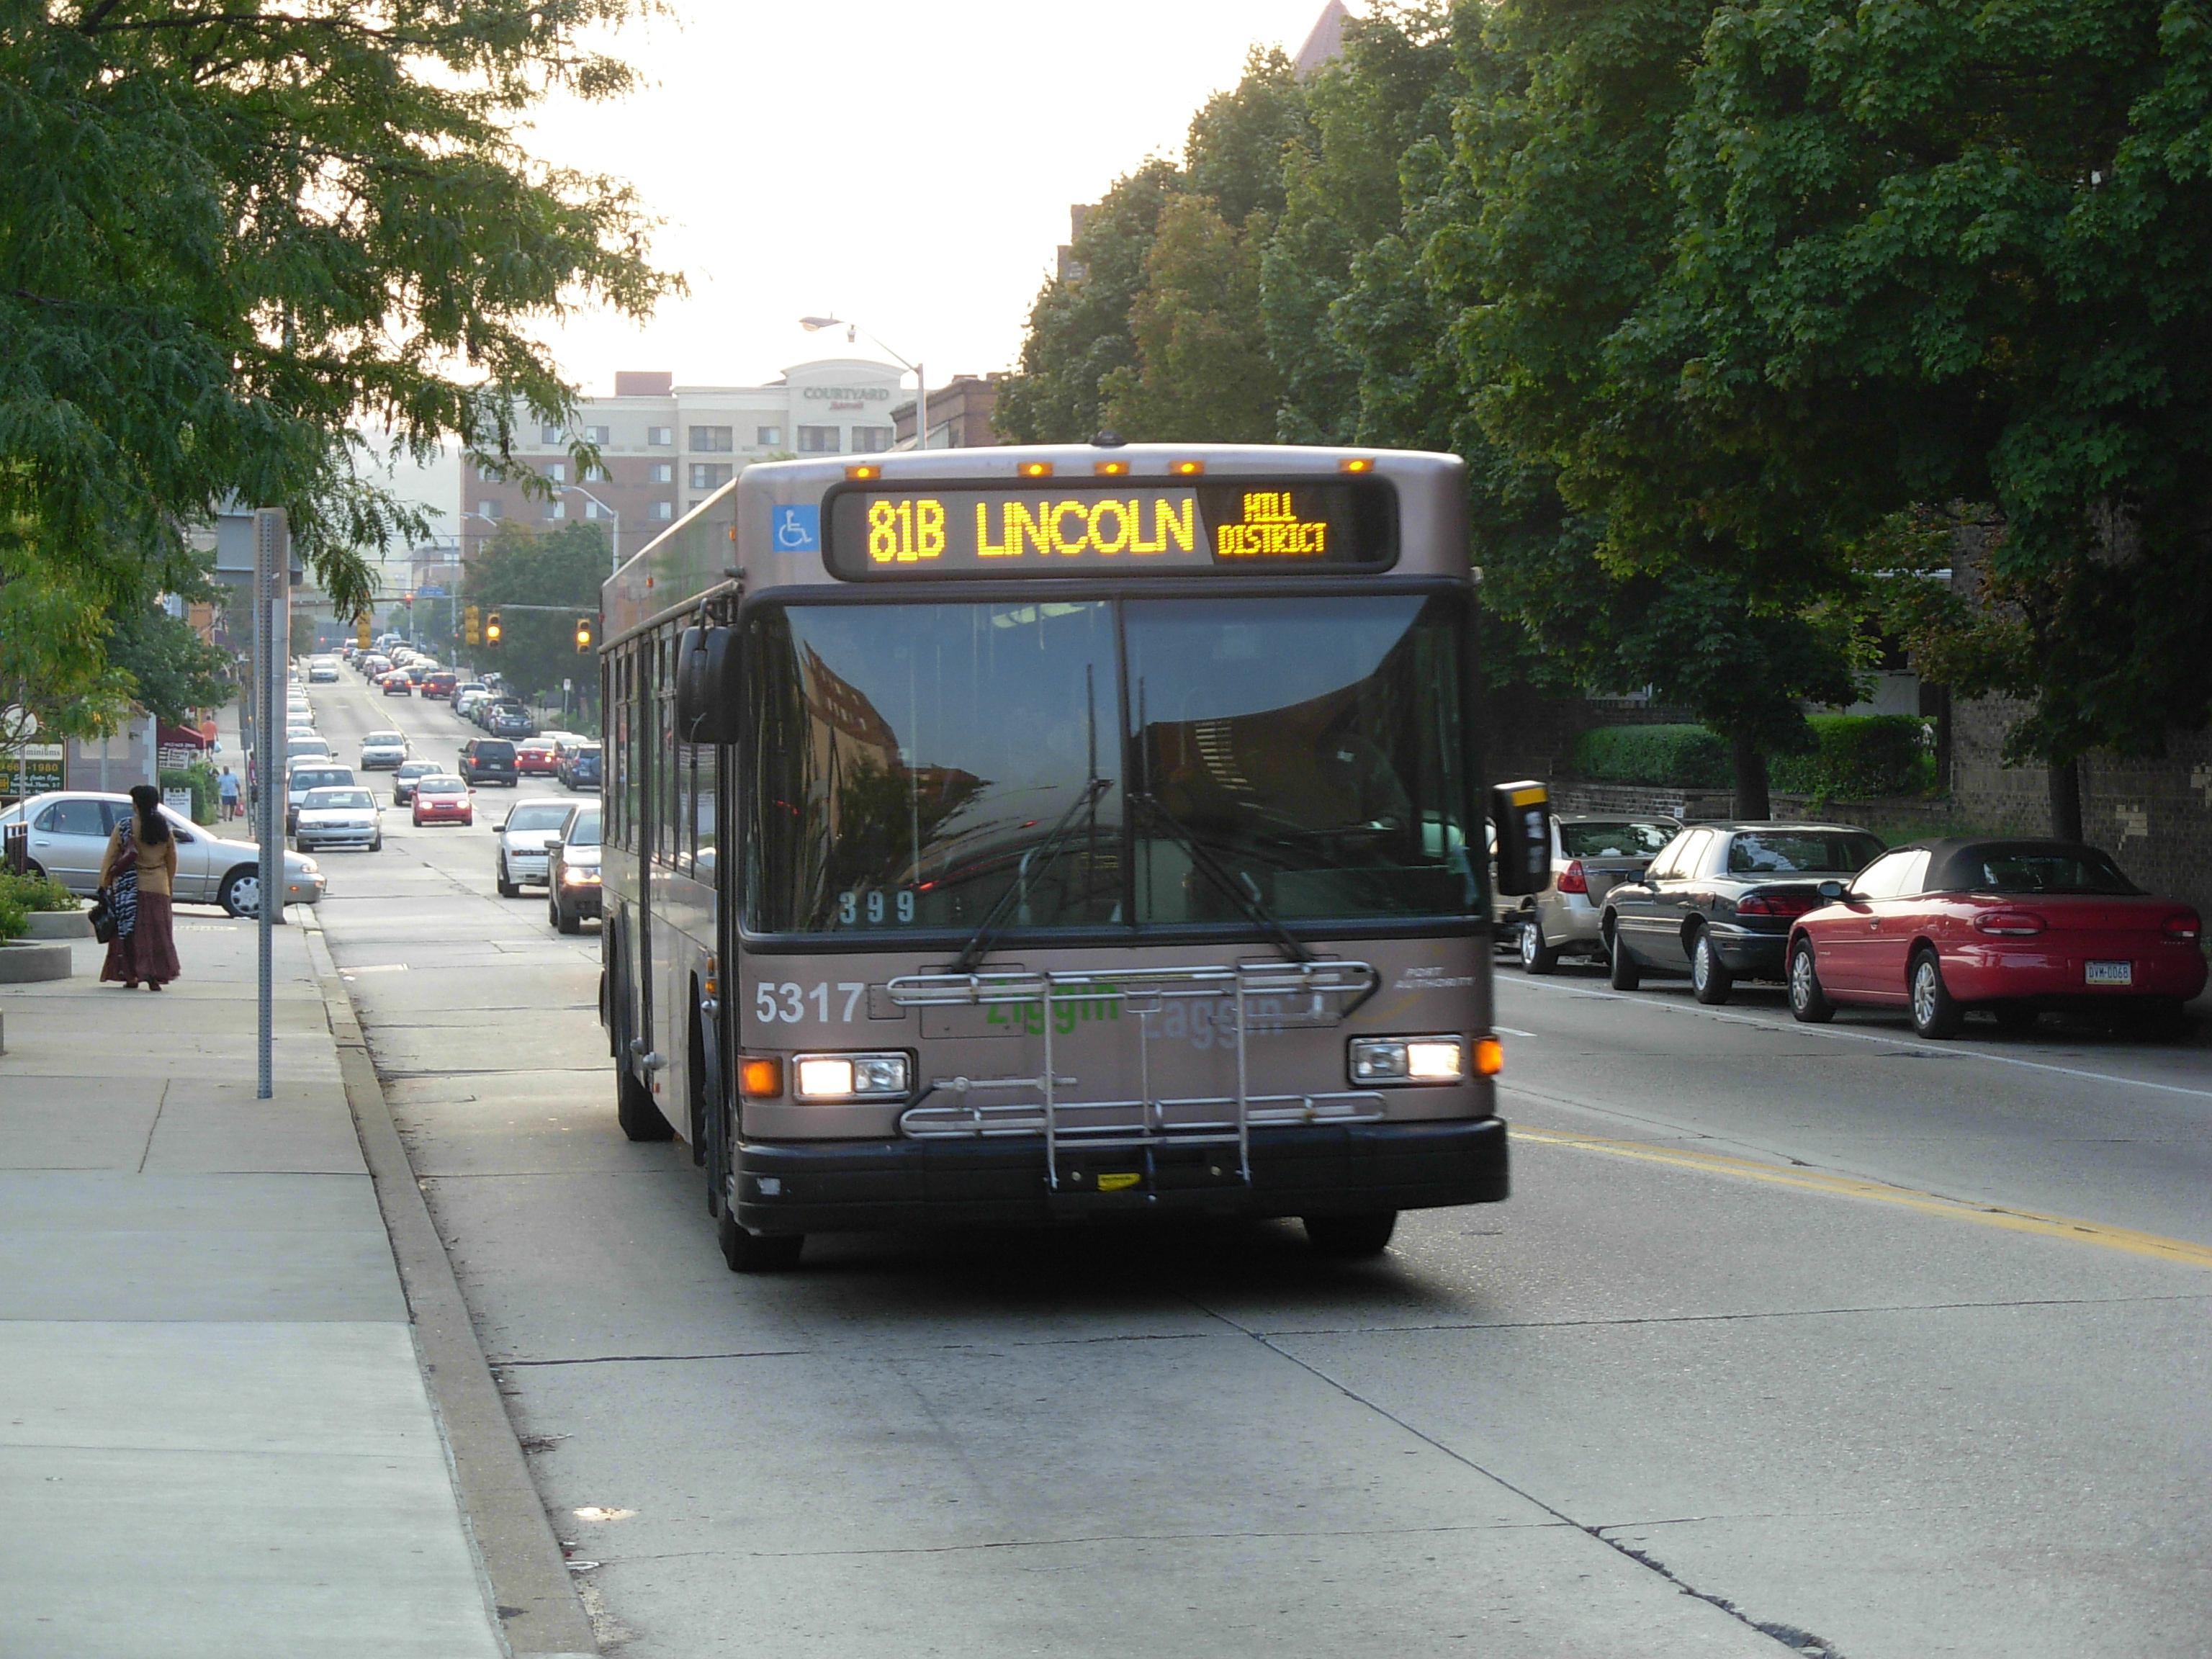 file:81b bus in pittsburgh - wikimedia commons